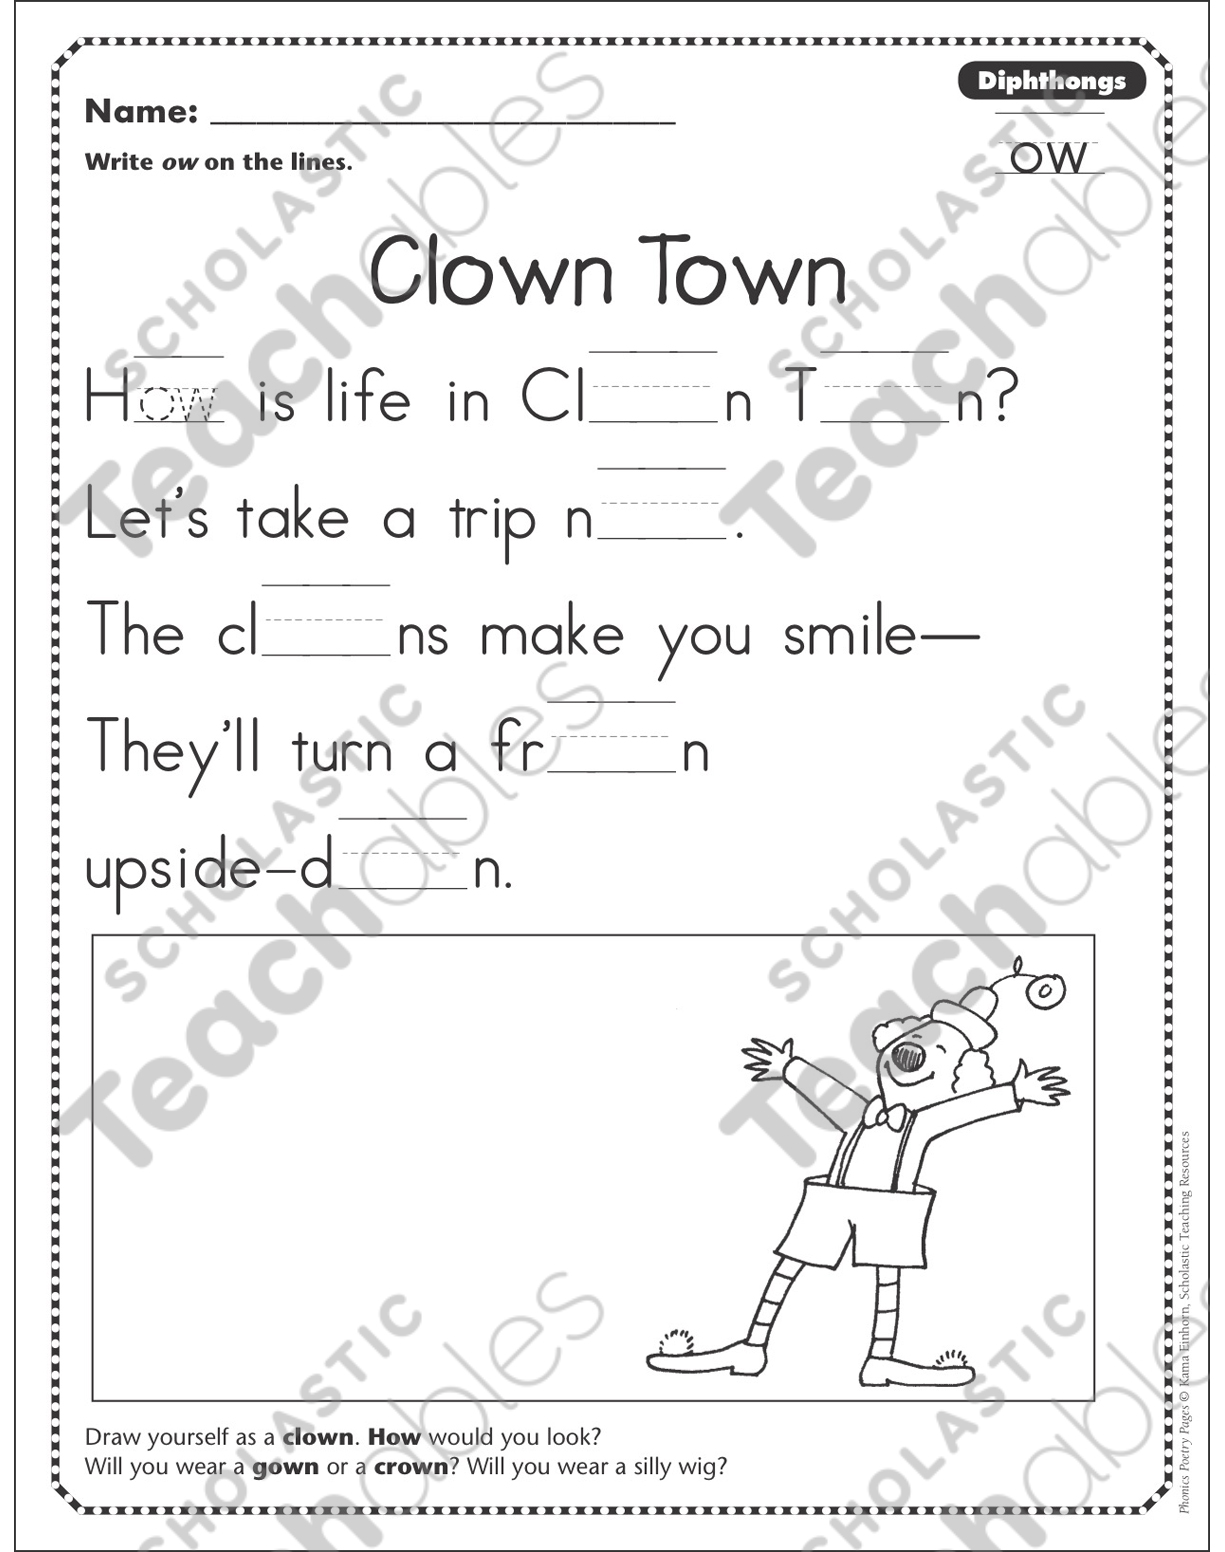 hight resolution of Clown Town (Dipthongs - ow): Phonics Poetry Page   Printable Skills Sheets